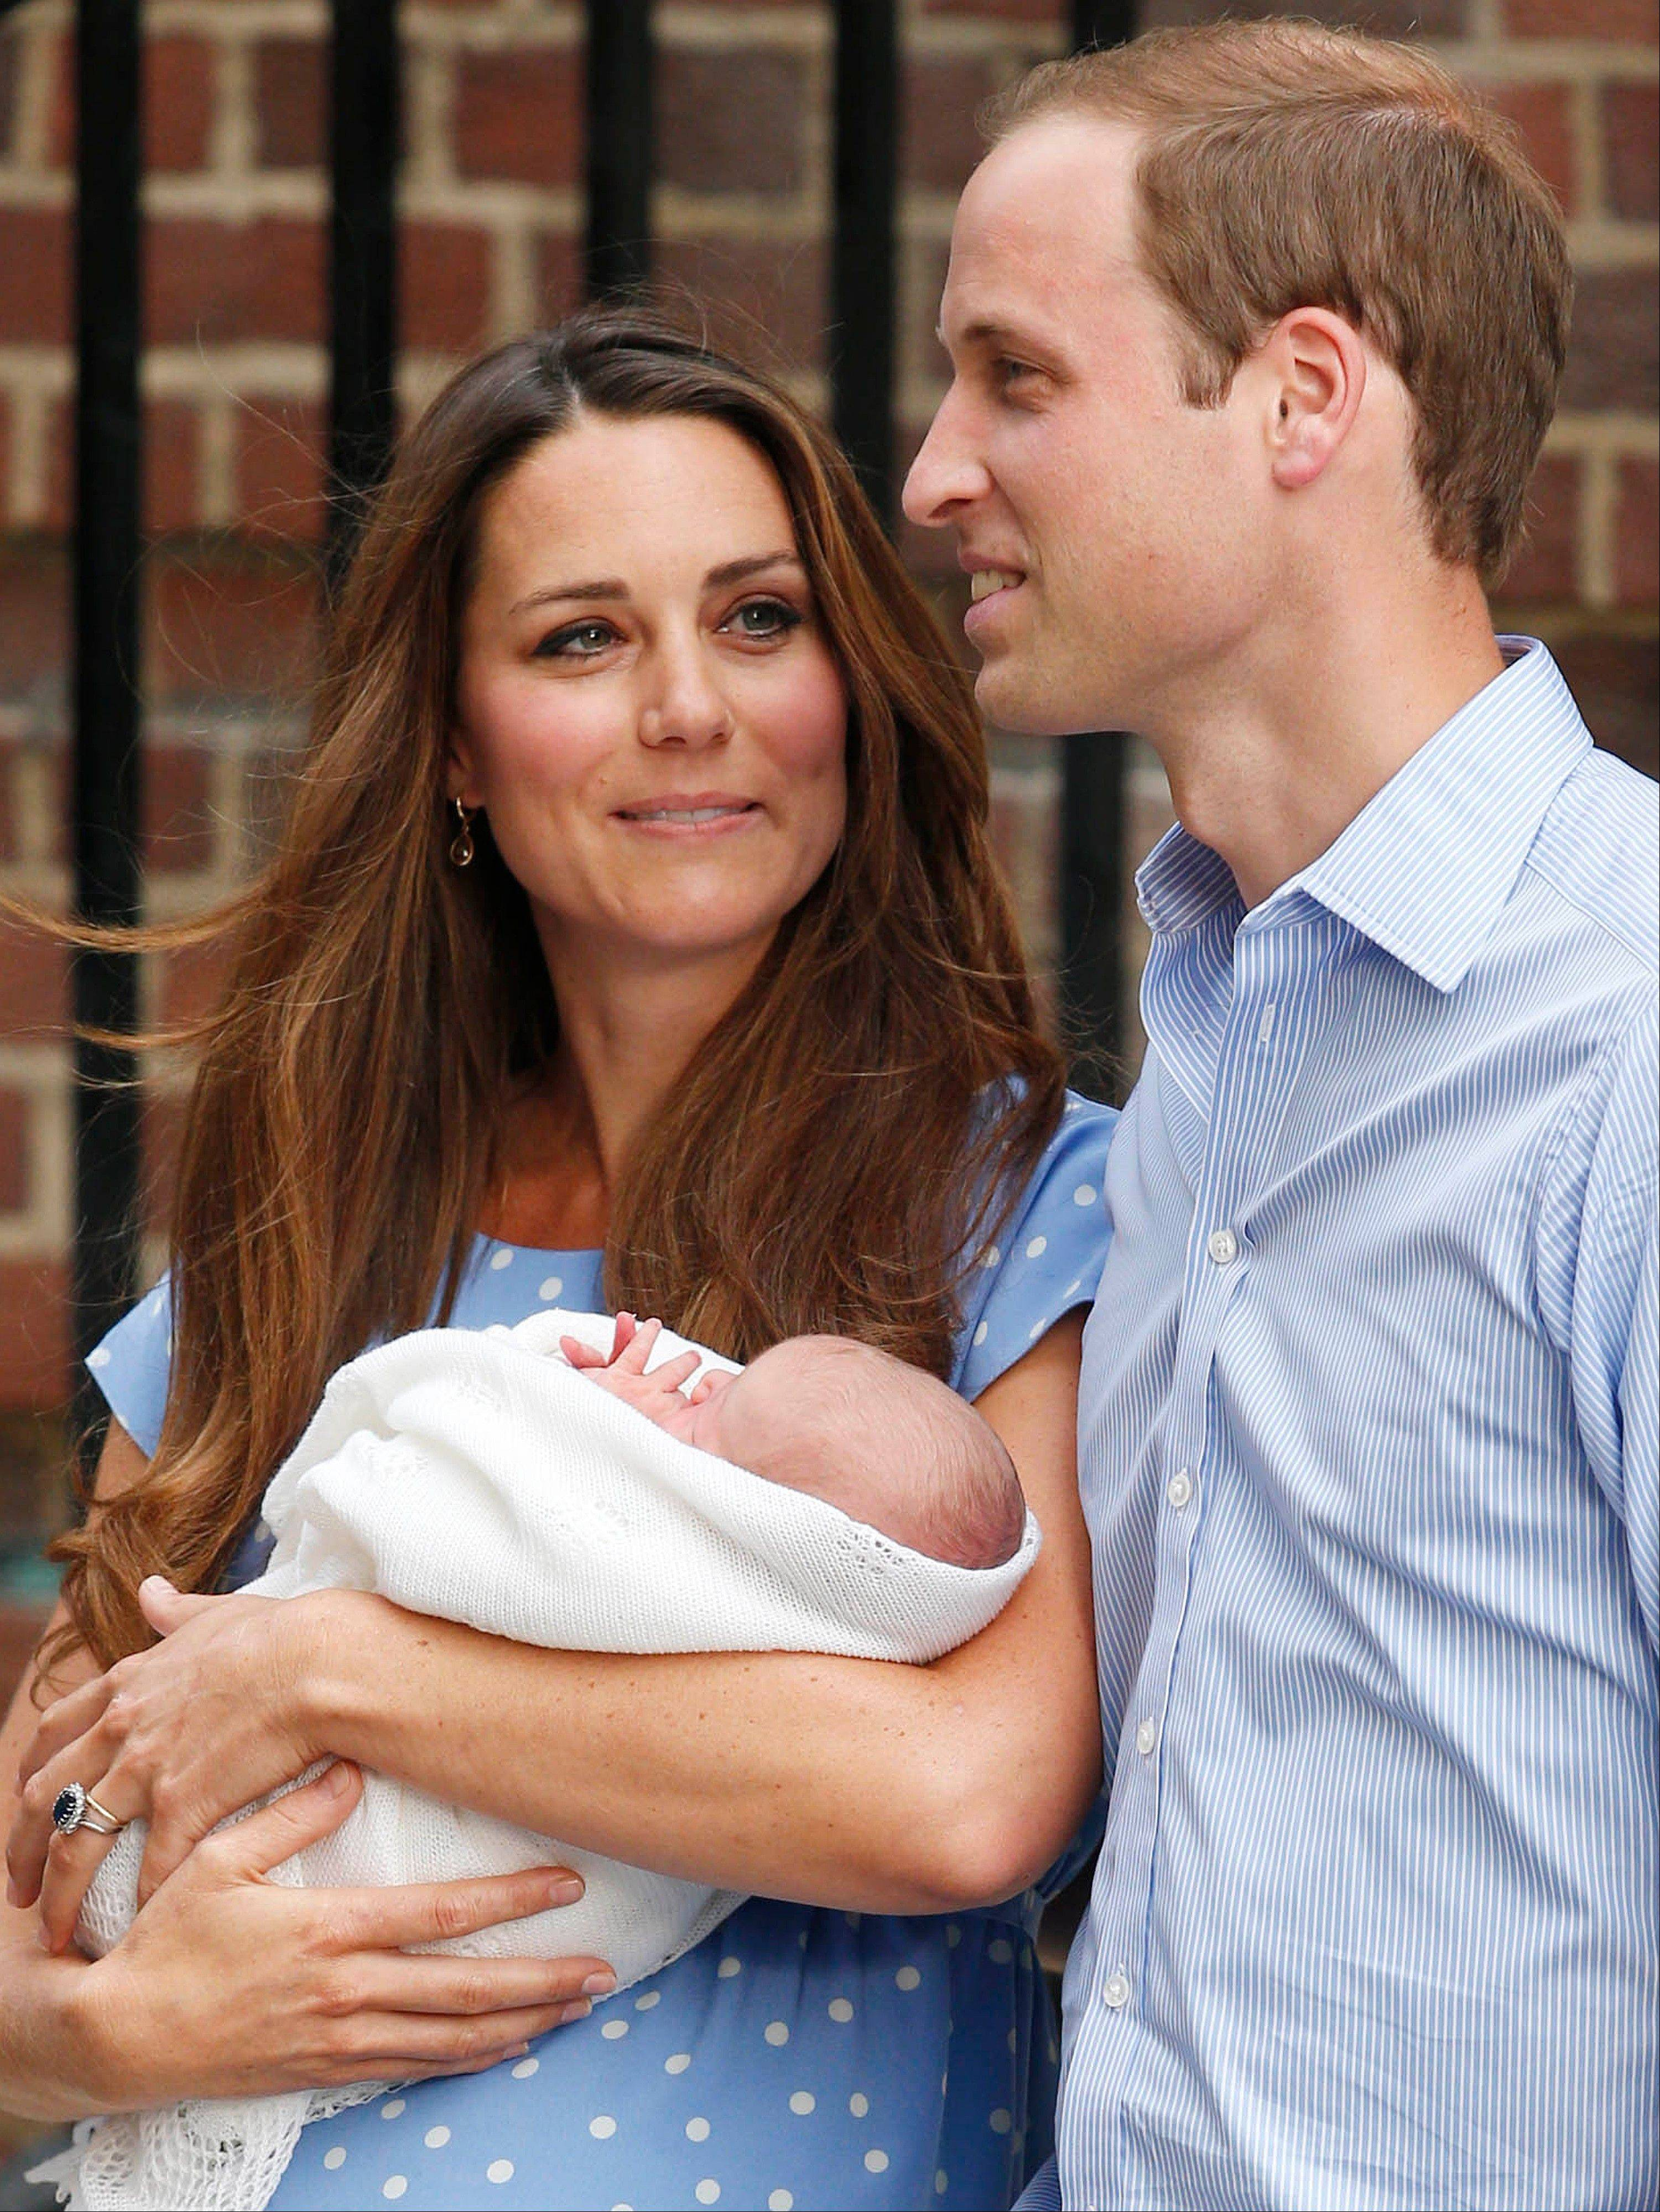 The Duke and Duchess of Cambridge leave the Lindo Wing of St Mary's Hospital in London Tuesday July 23 2013, carrying their newborn son.